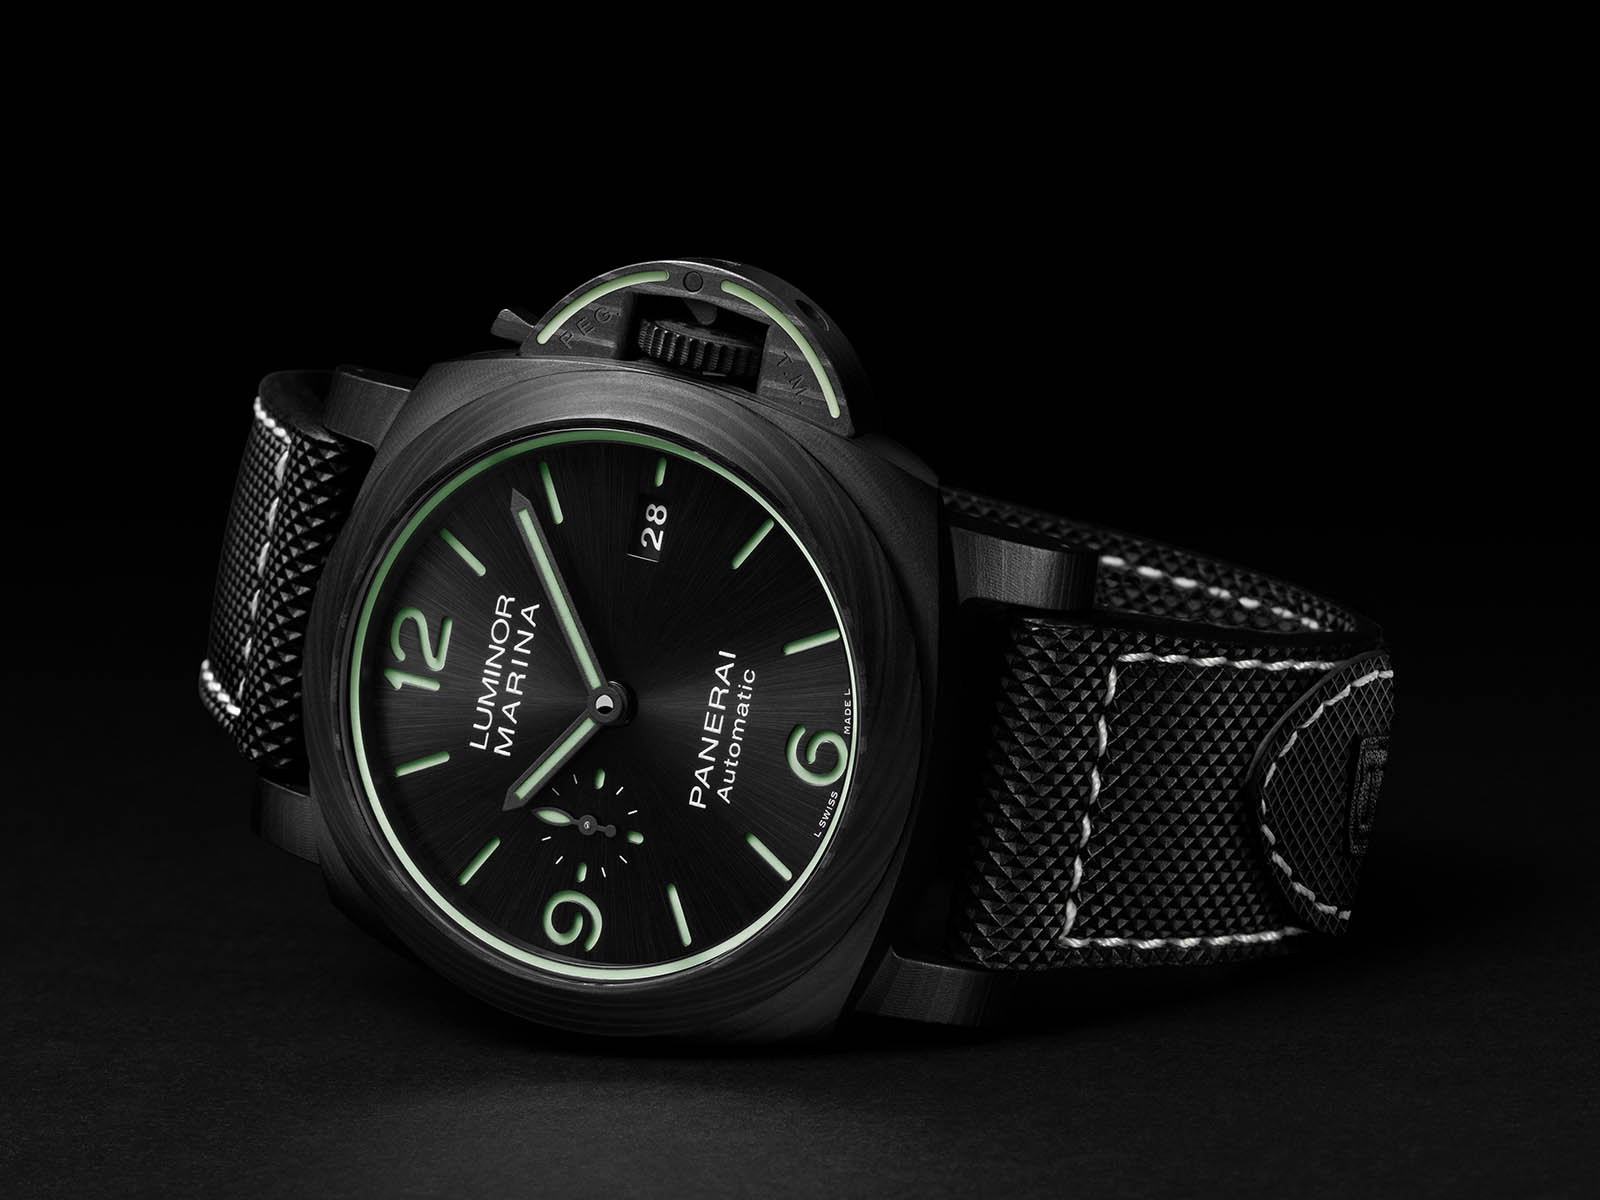 pam01118-officine-panerai-luminor-marina-carbotech-44mm.jpg